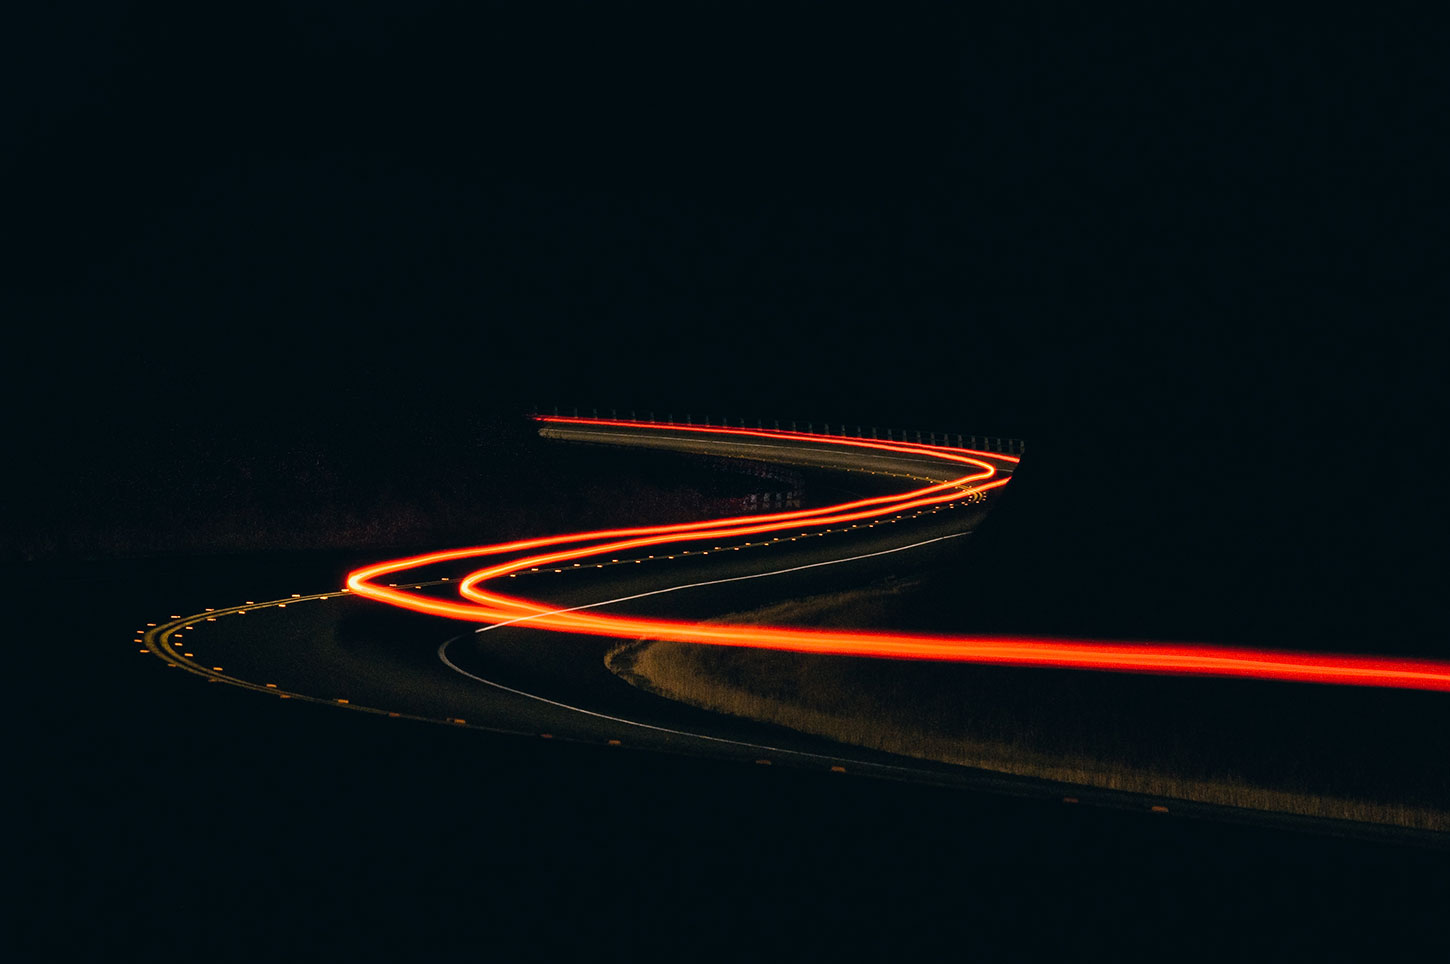 Taillights at night on winding road